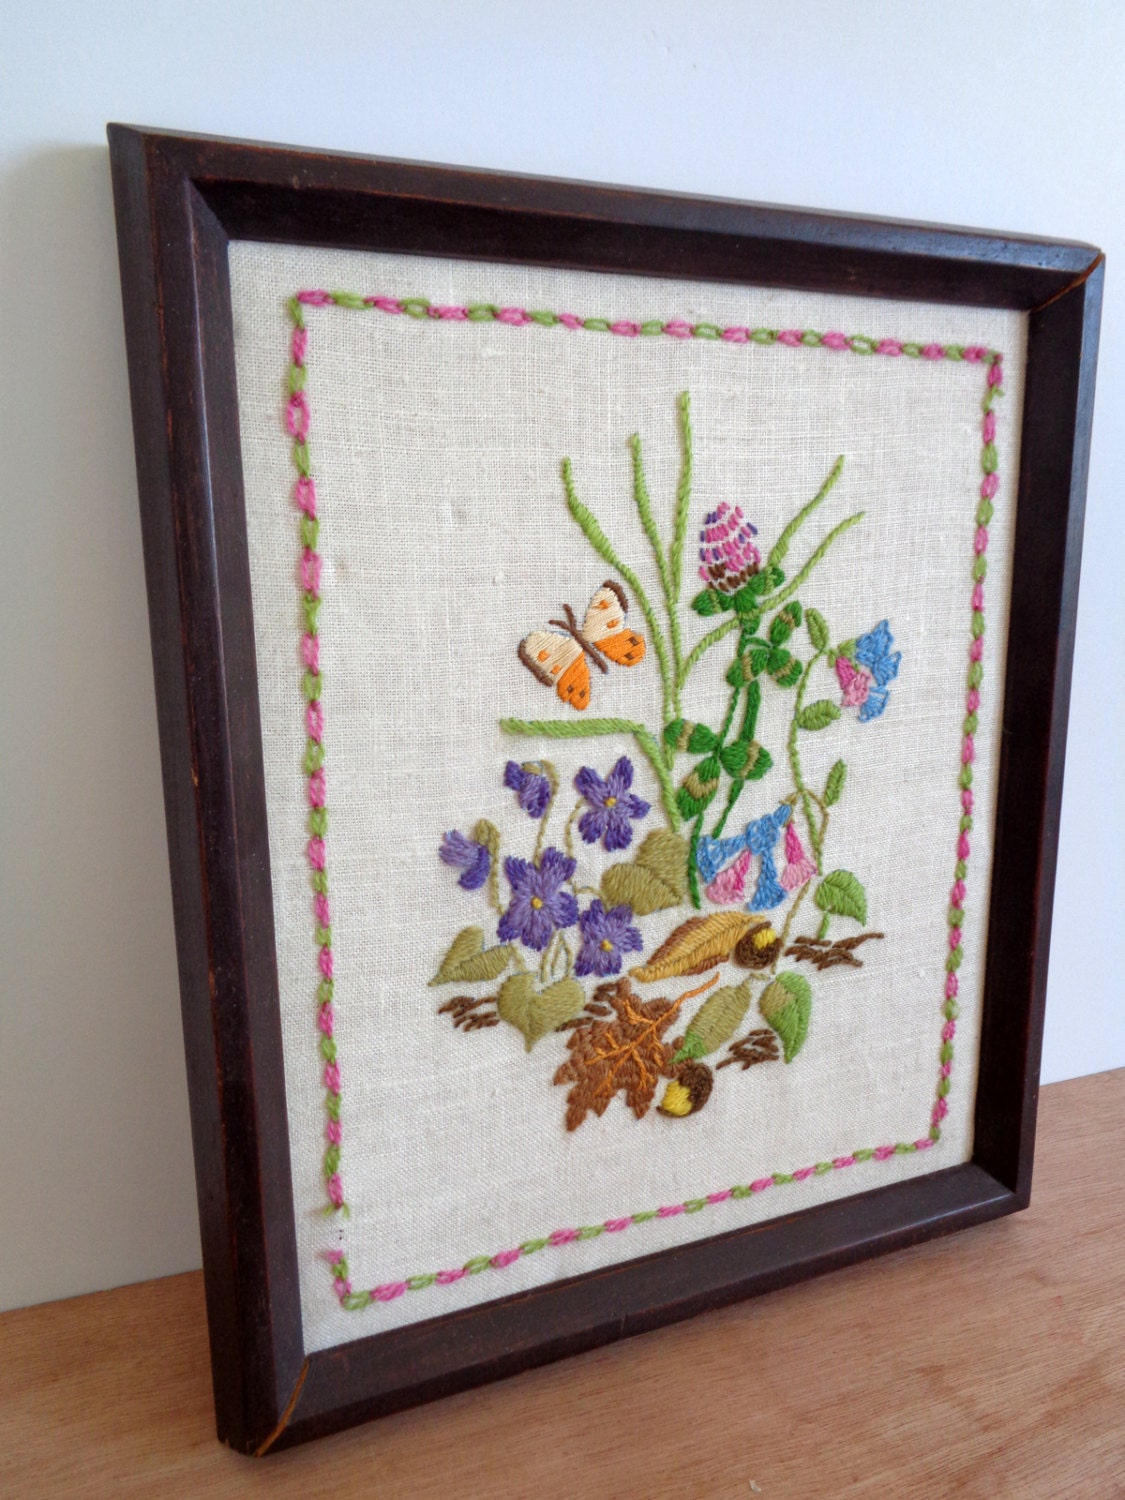 CLEARANCE Vintage Crewel Needlepoint Embroidery Framed Art - Natural ...